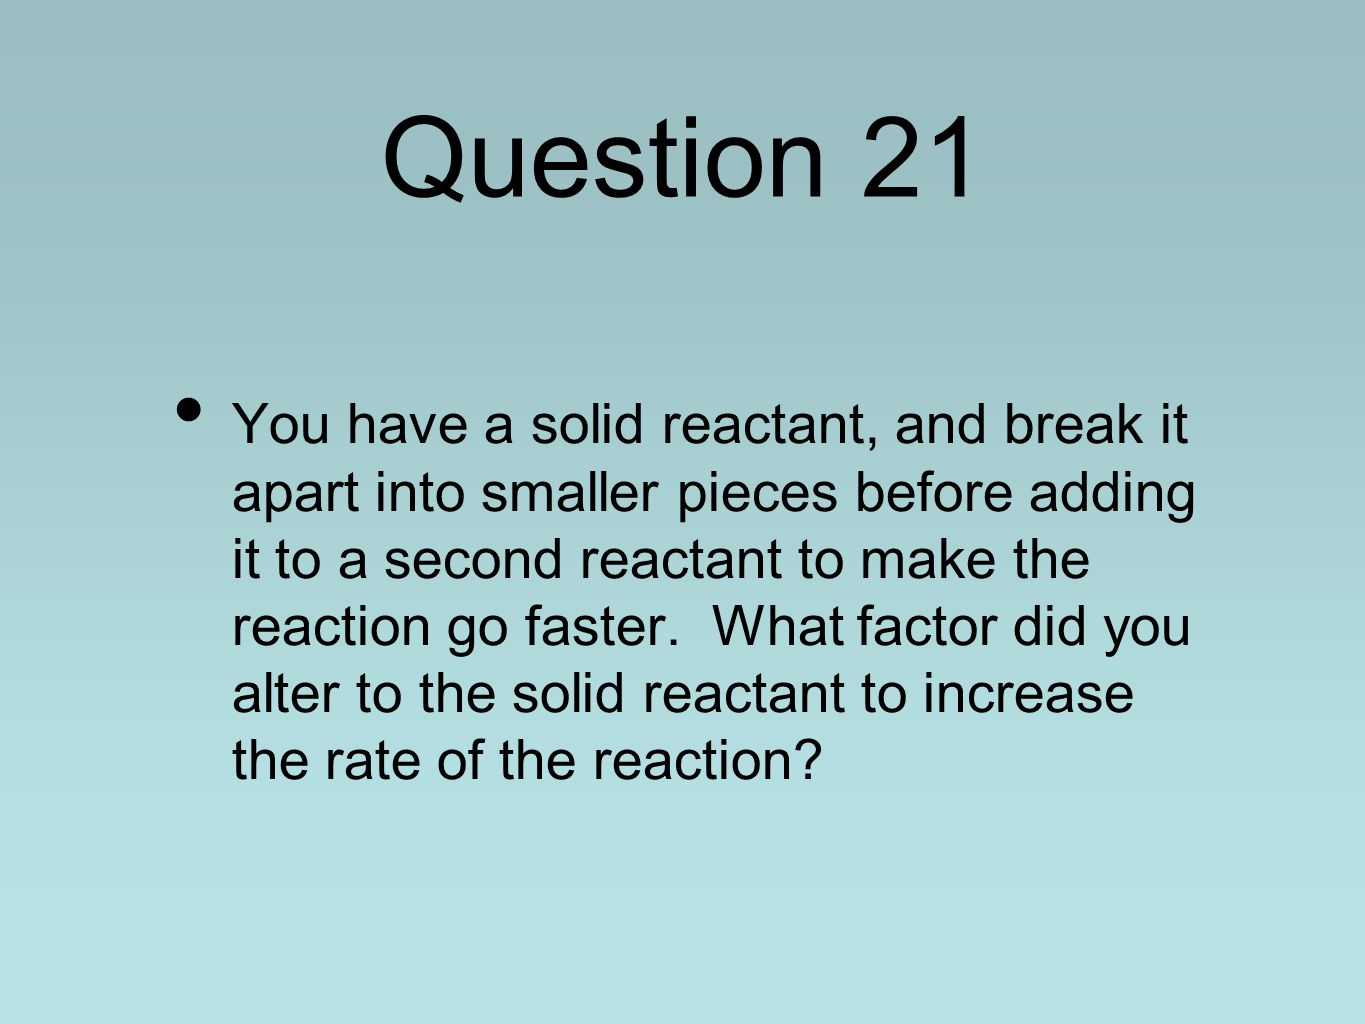 Question 21 You have a solid reactant, and break it apart into smaller pieces before adding it to a second reactant to make the reaction go faster. Wh